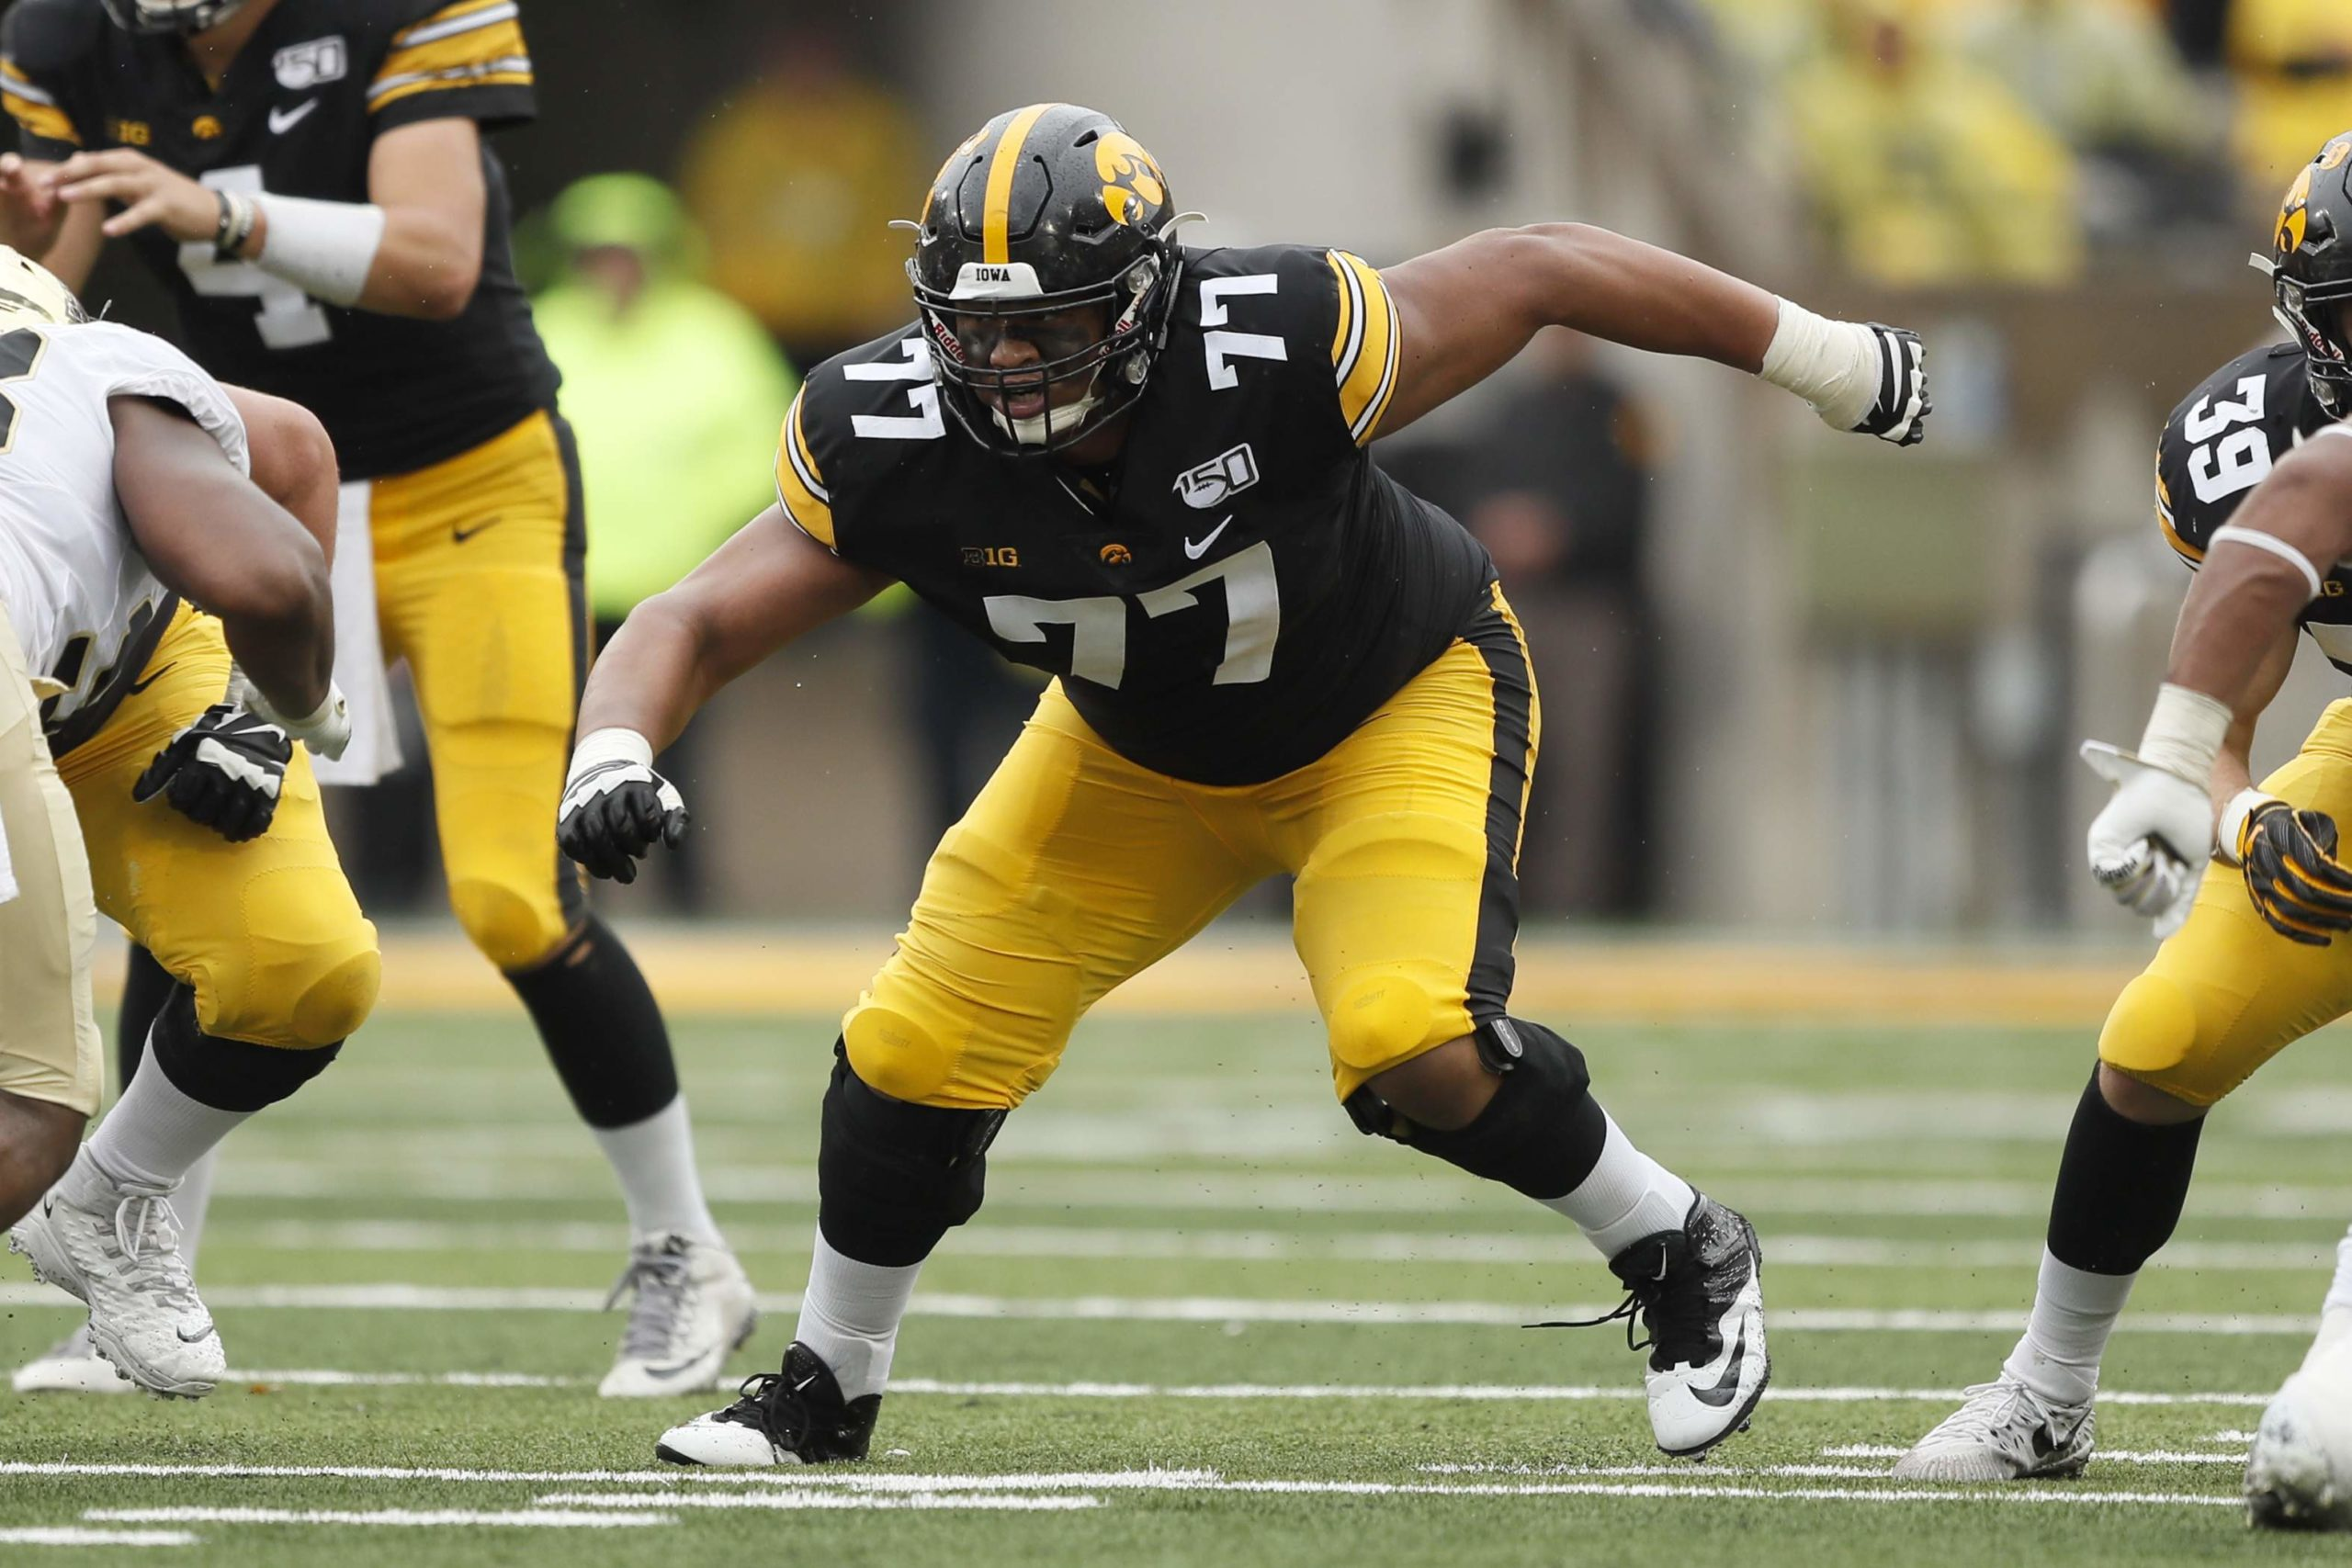 Iowa OL Alaric Jackson is an athletic offensive lineman with a mean streak